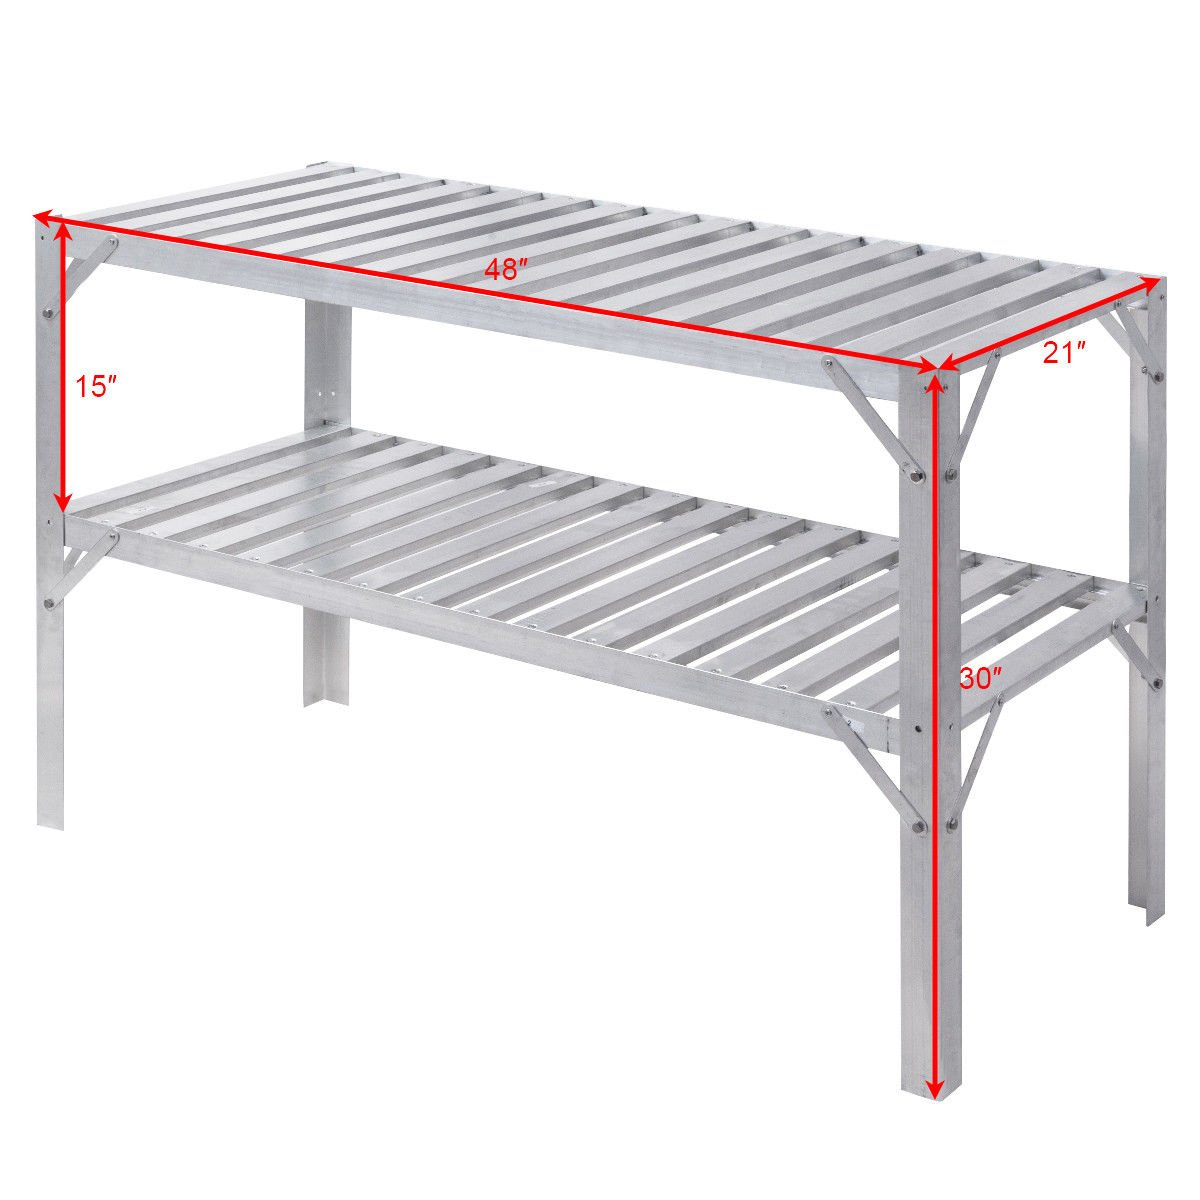 Giantex Aluminum Workbench Oranizer Greenhouse Prepare Work Potting Table Storage Garage Shelves, Silver by Giantex (Image #5)